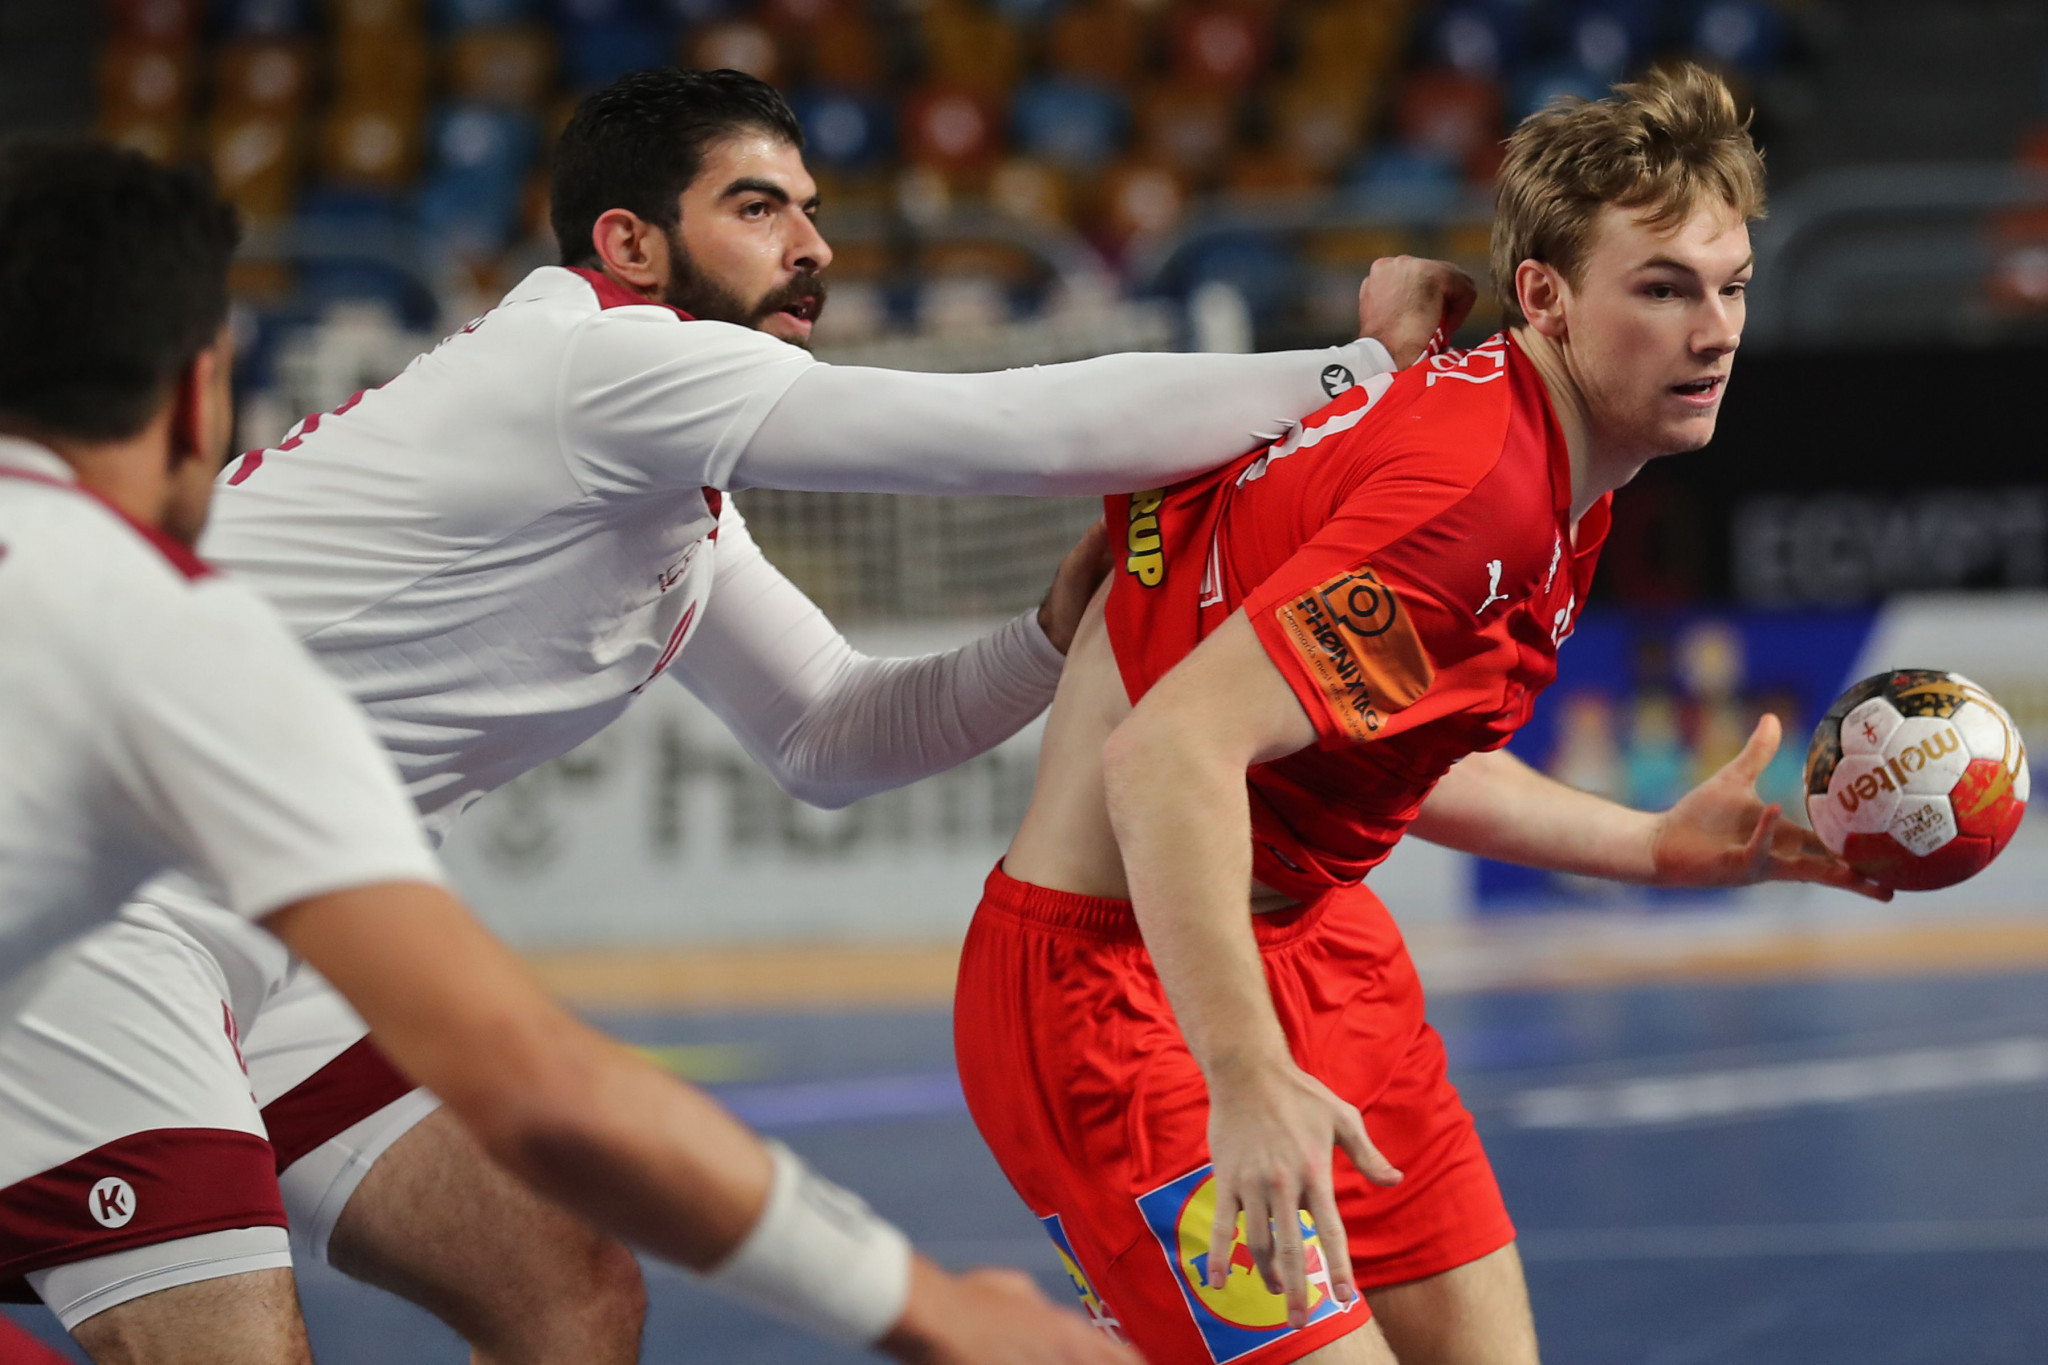 Mathias Gidsel, who scored six goals for Denmark, has his shirt pulled up his back by a Qatari player during their IHF World Men's Handball Championship match ©Getty Images